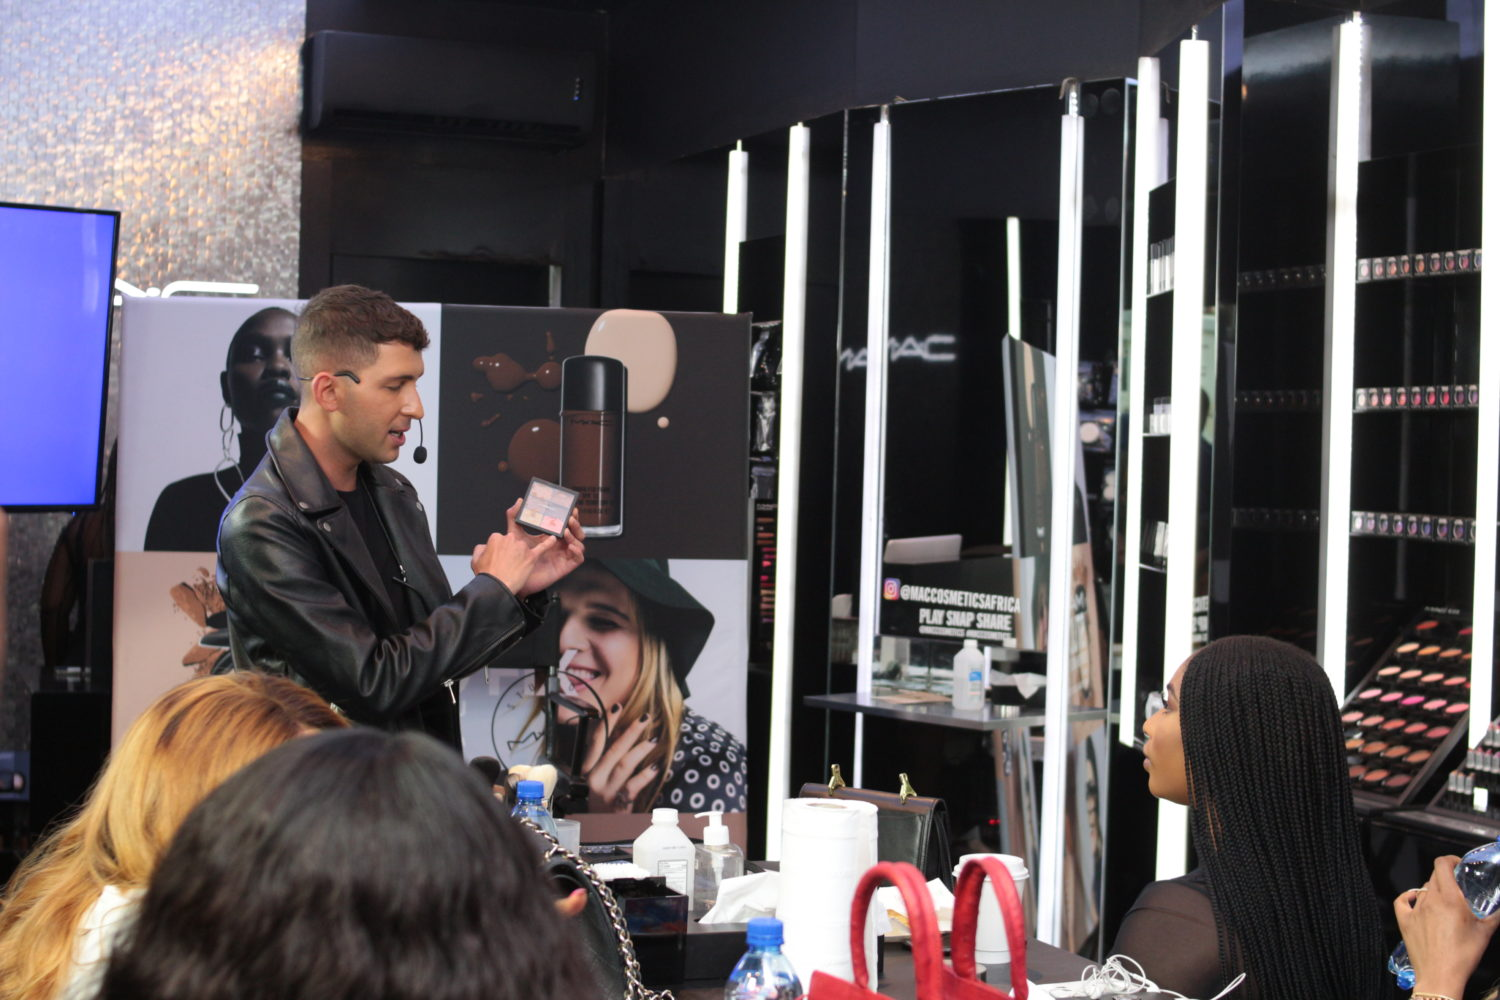 Did You Miss Out On All The Fun and Fab Moments At The M.A.C Cosmetics Event? Catch Up Now!